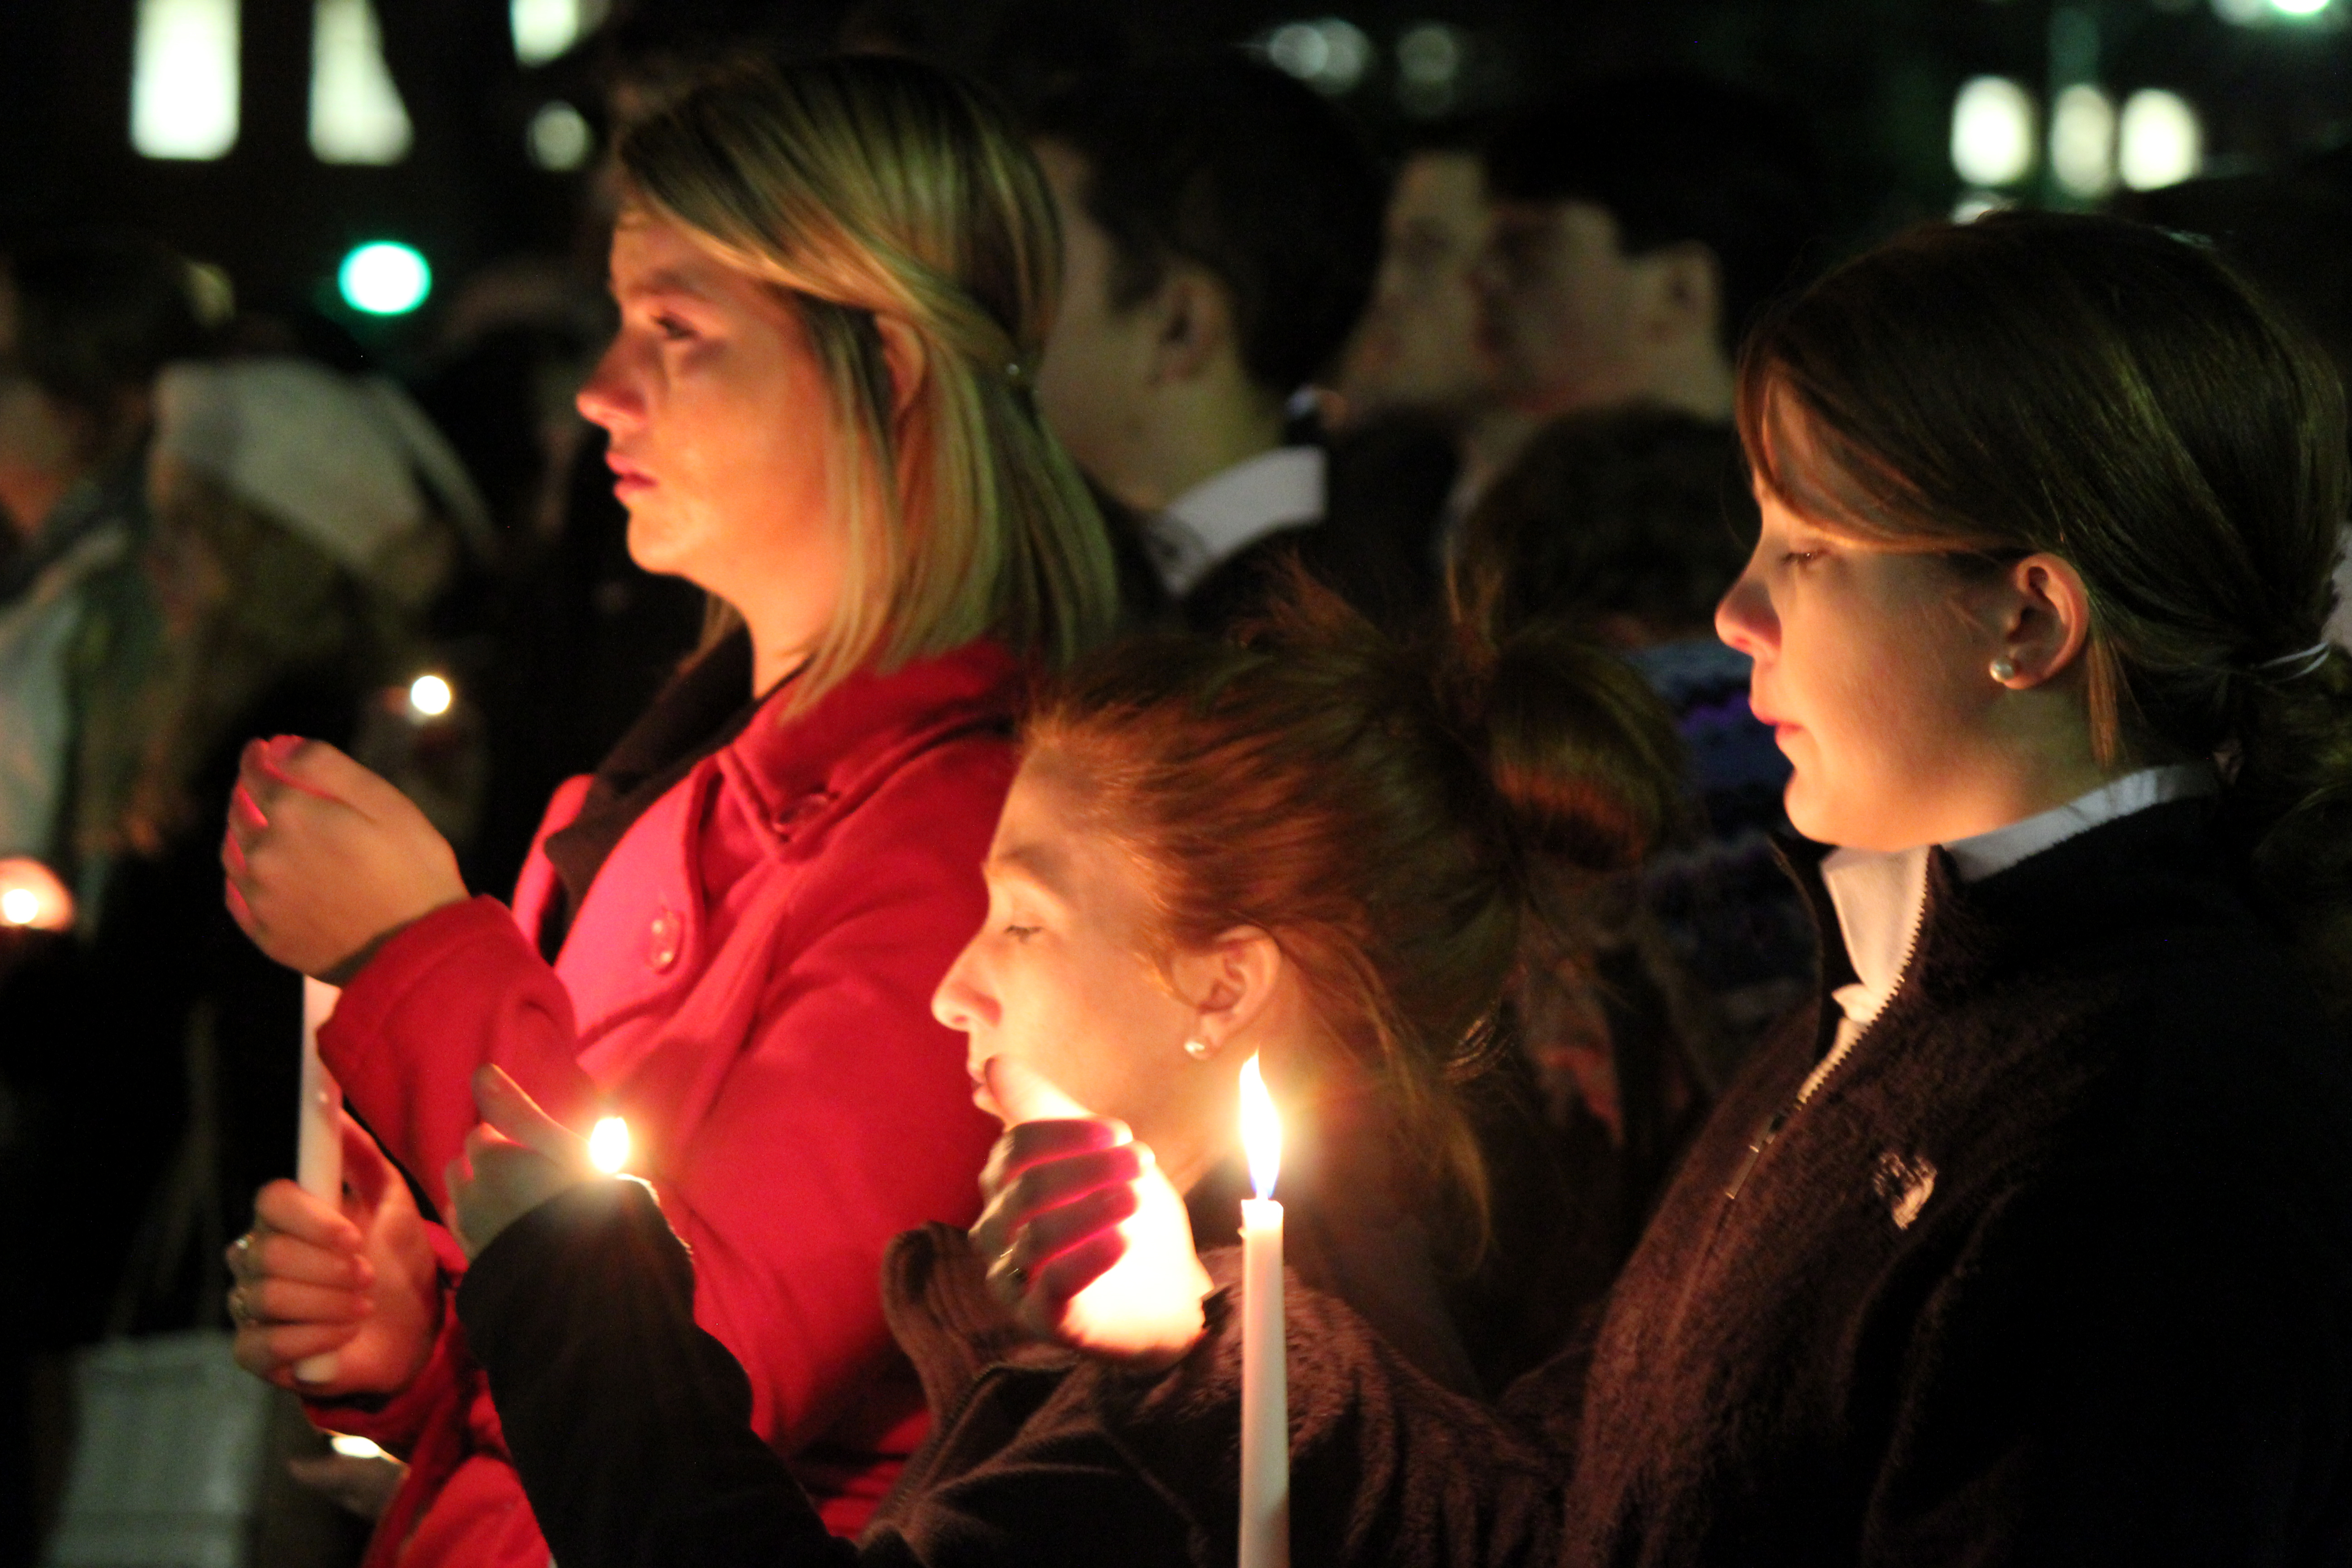 More than 500 at UMaine mourn fraternity brothers killed in plane crash